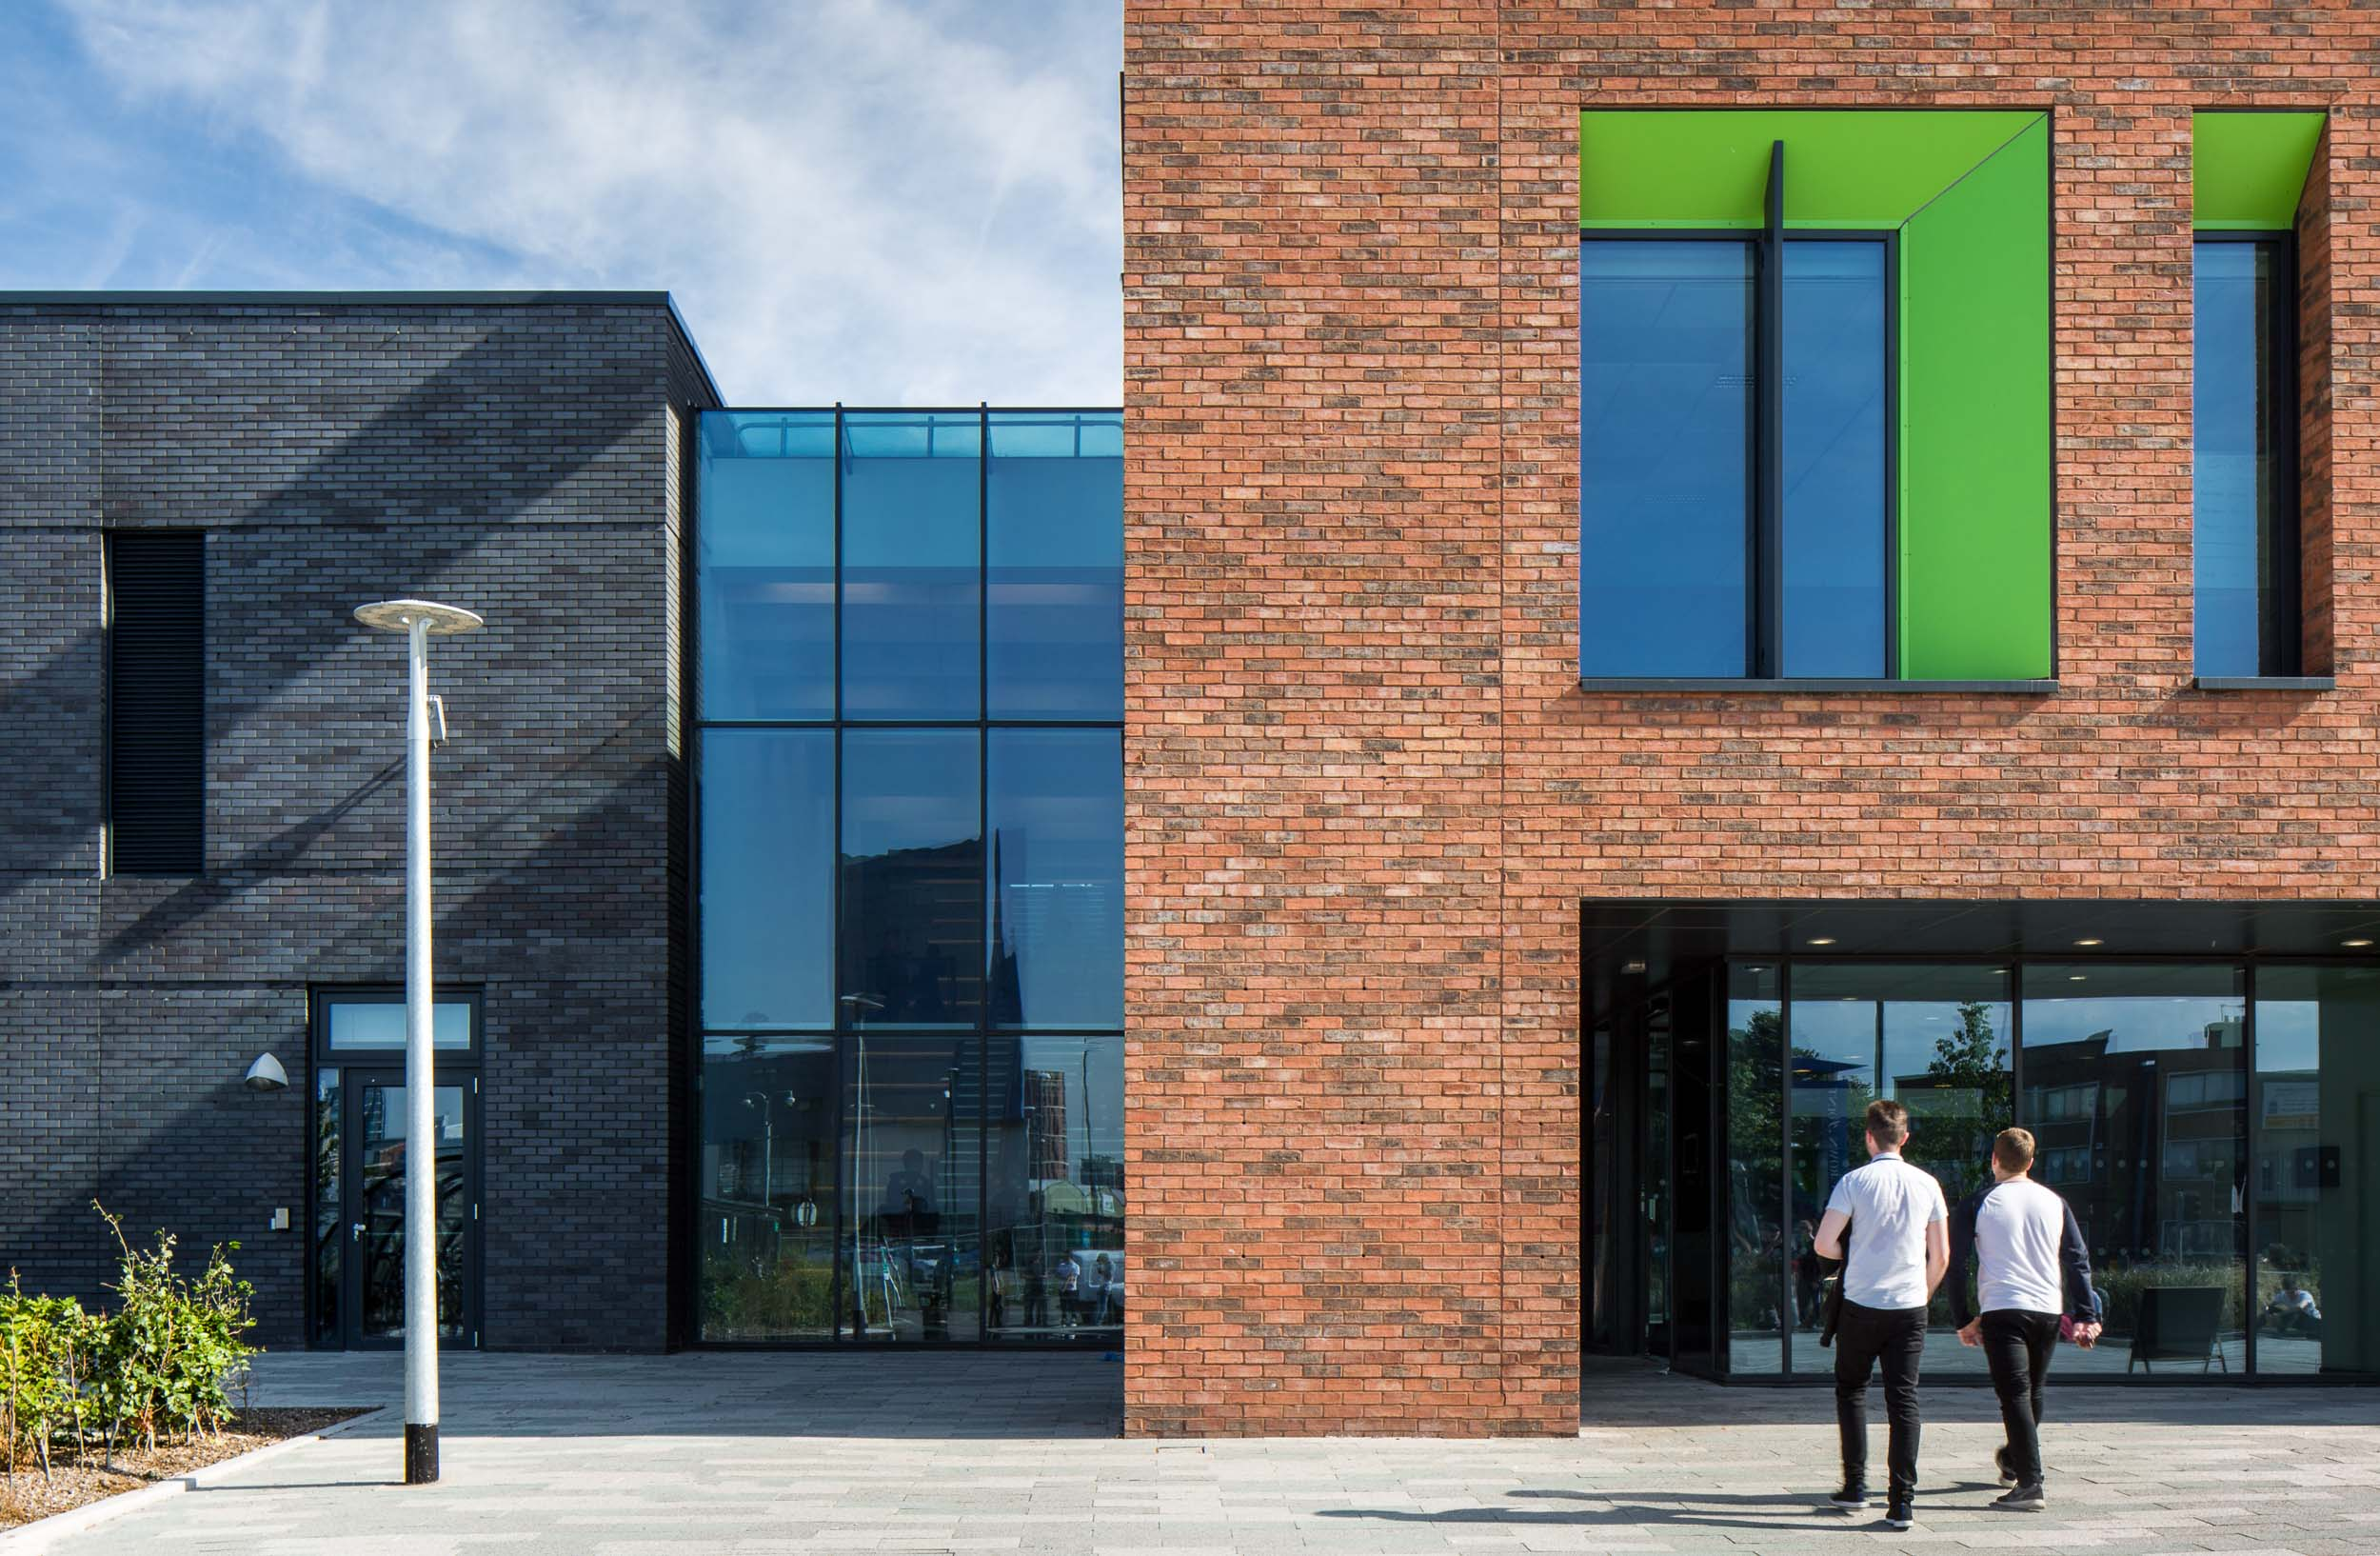 leeds college of building main entrance exterior detail architectural photo.jpg